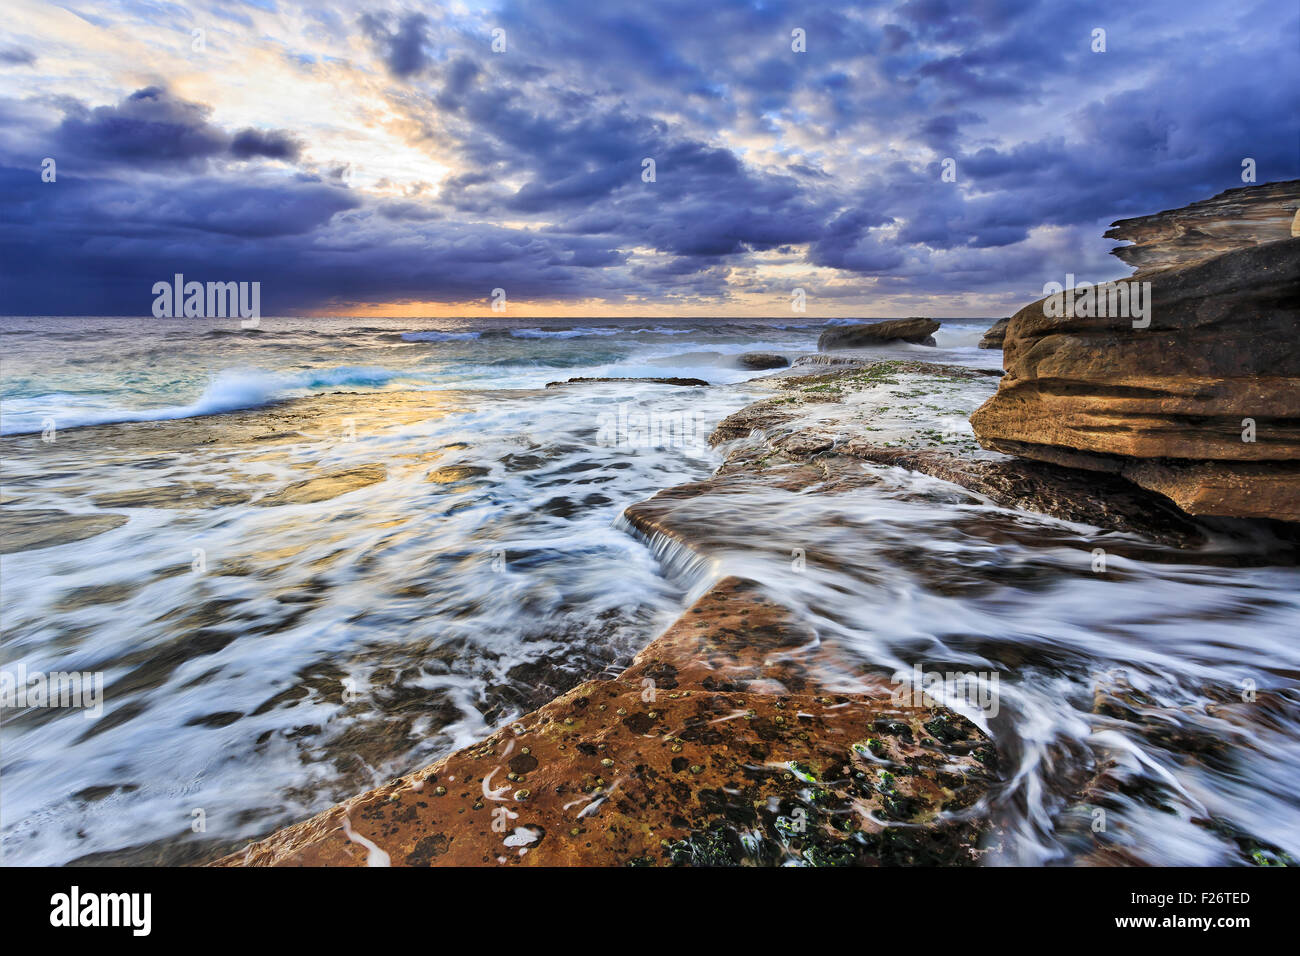 Picturesque pacific coastline at sunrise near Maroubra beach in Sydney - Stock Image